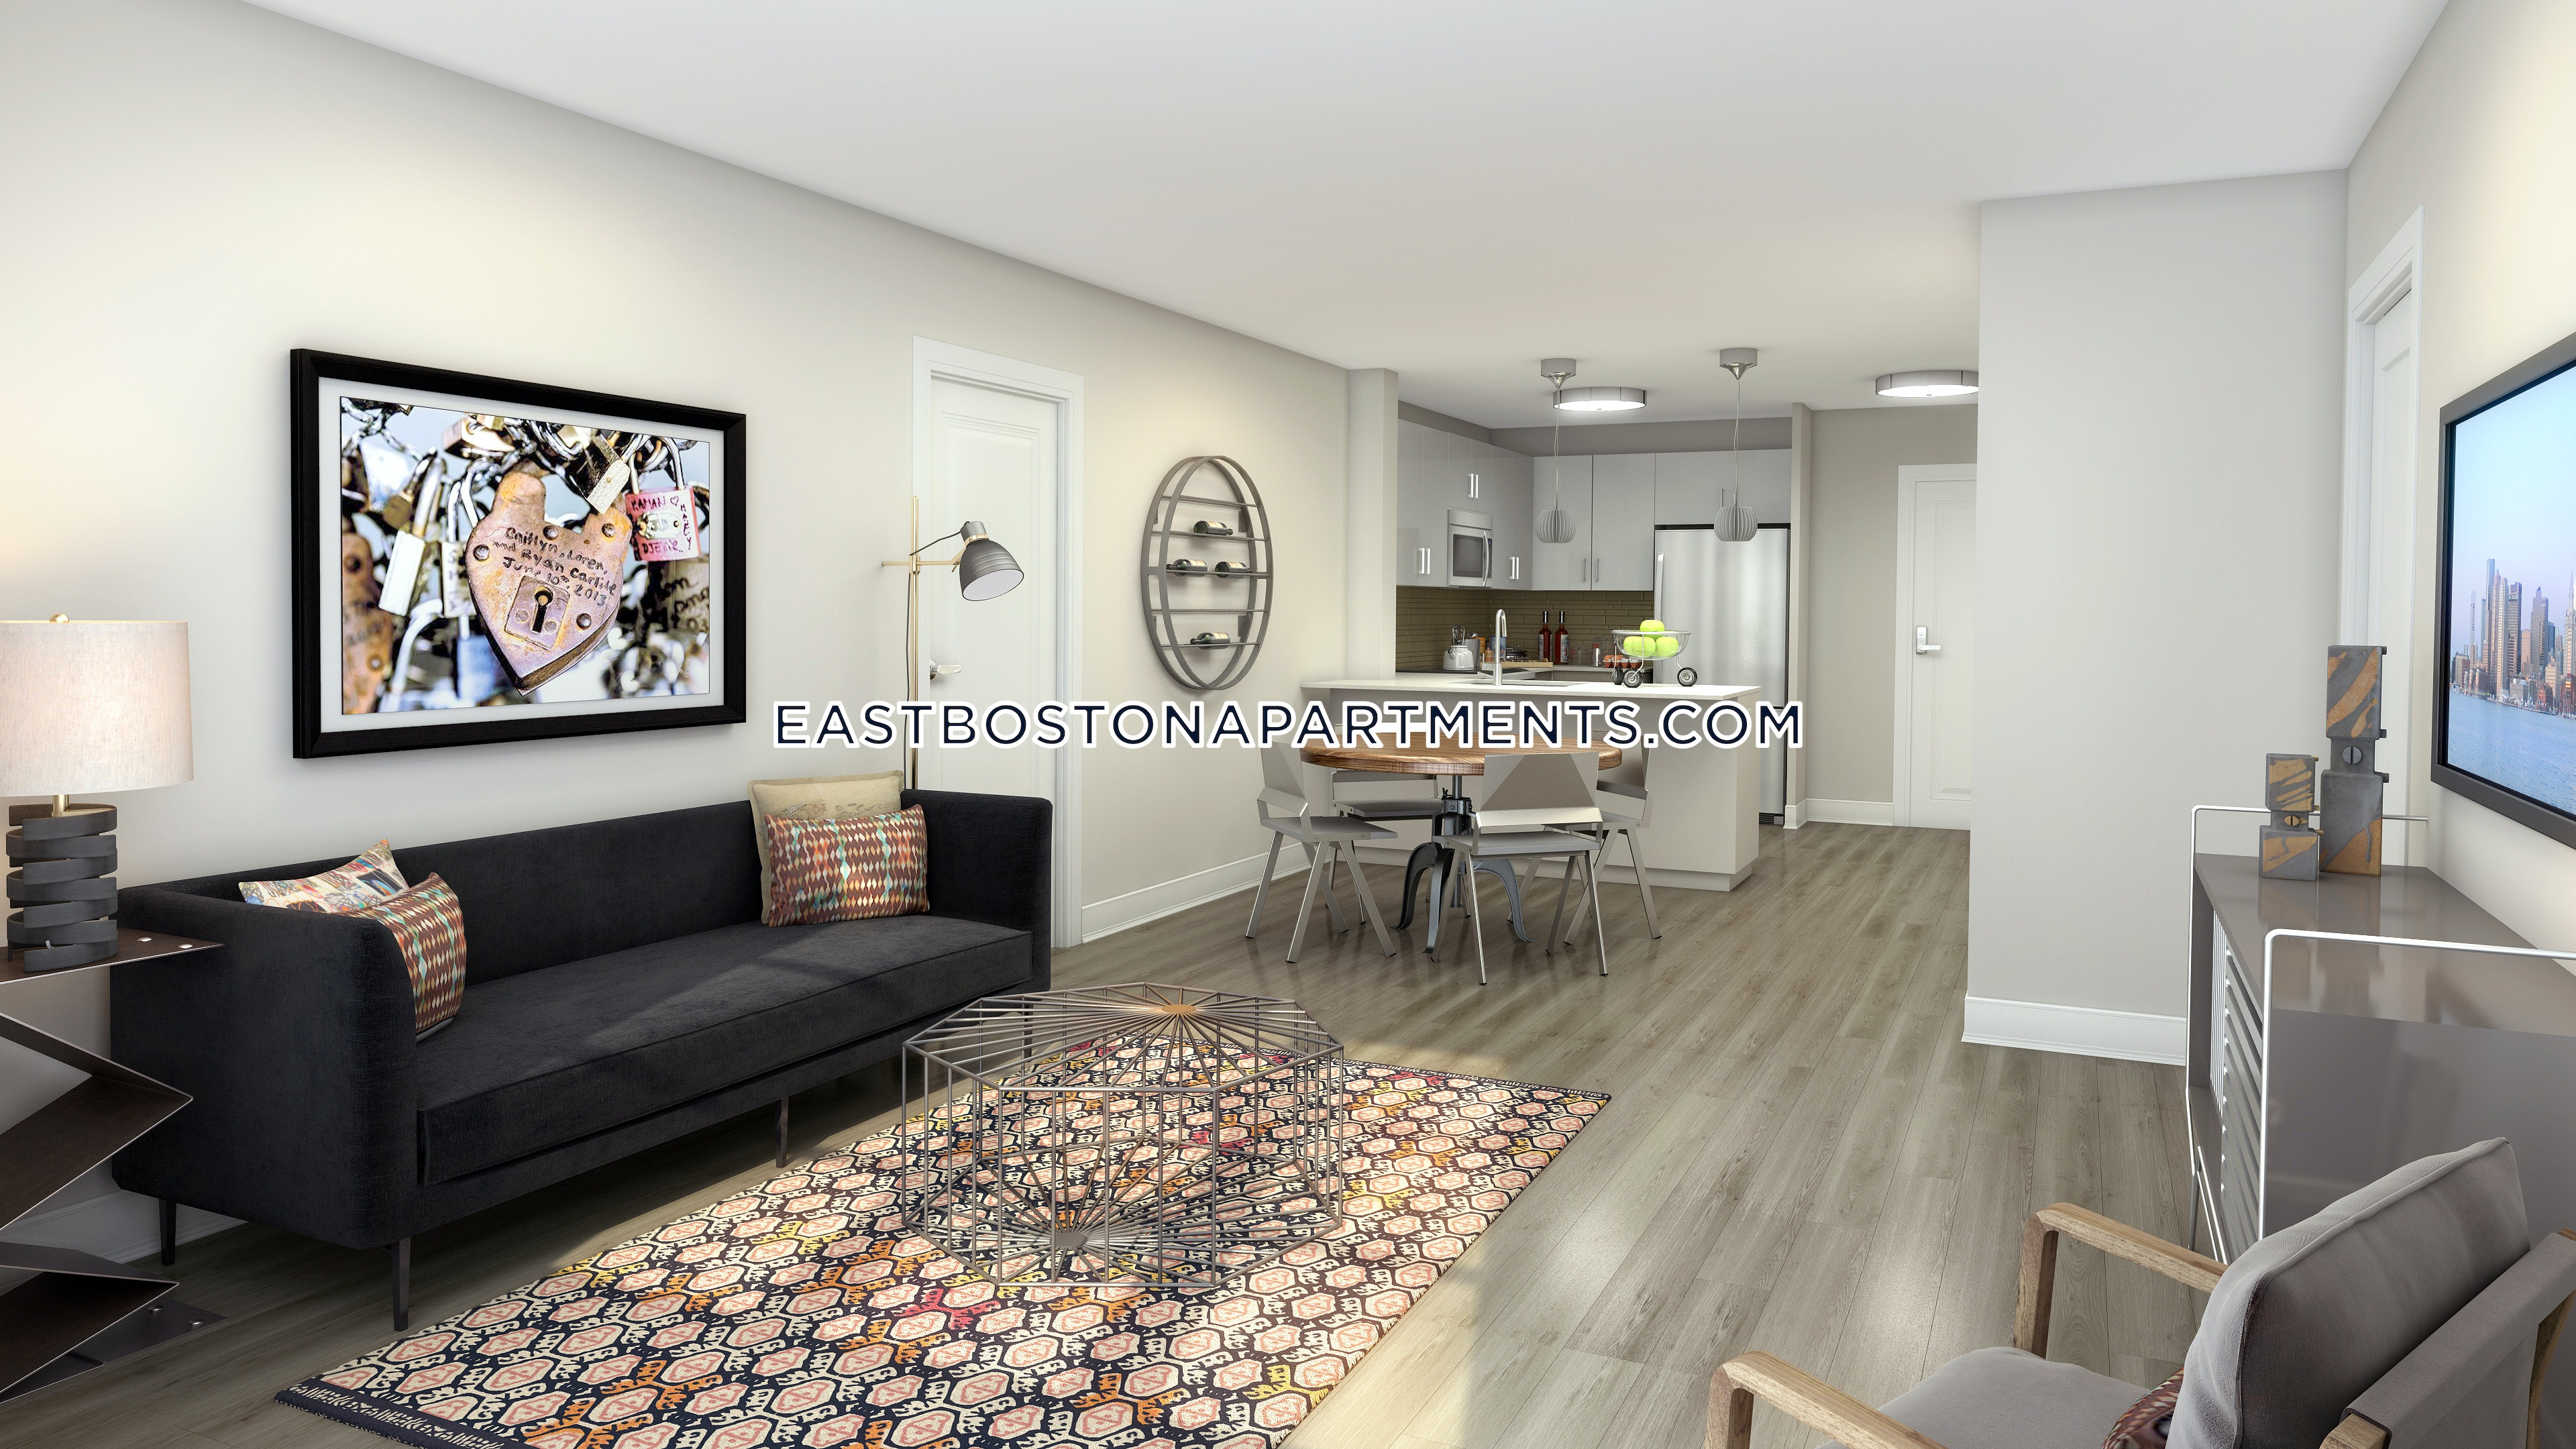 South Boston Apartments East Apartment For Rent 2 Bedrooms Baths 3 590